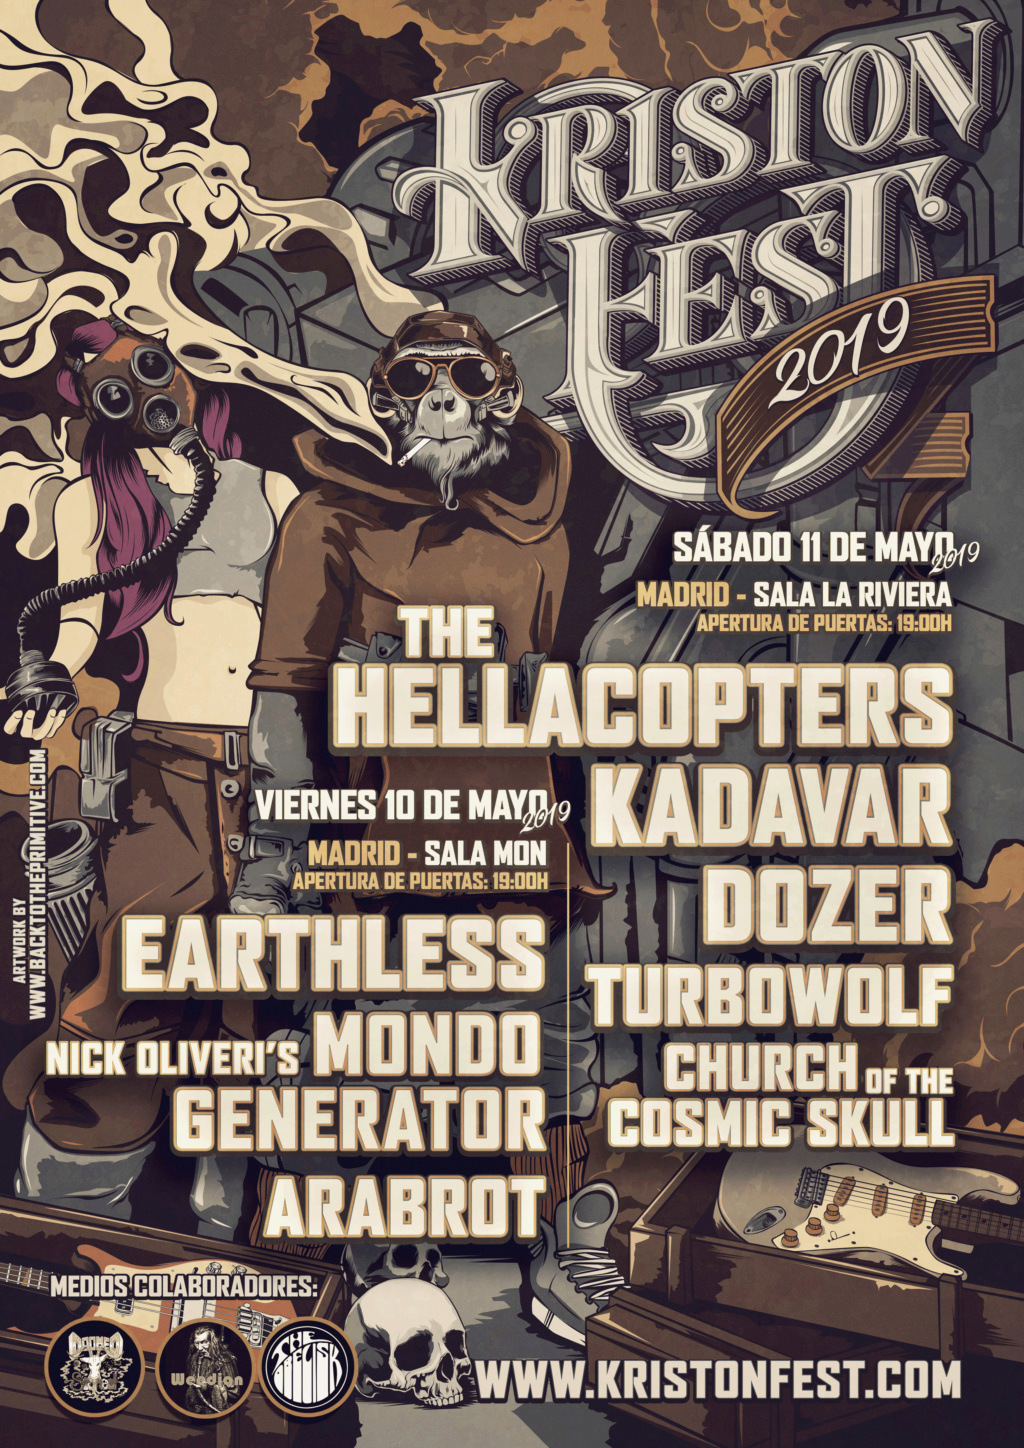 KRISTONFEST (10+11 Mayo, 2019) The Hellacopters, Earthless, Kadavar, Dozer, Nick Oliveri's Mondo Generator, Turbowolf, Church Of The Cosmic Skull y Arabrot - Página 3 Poster10